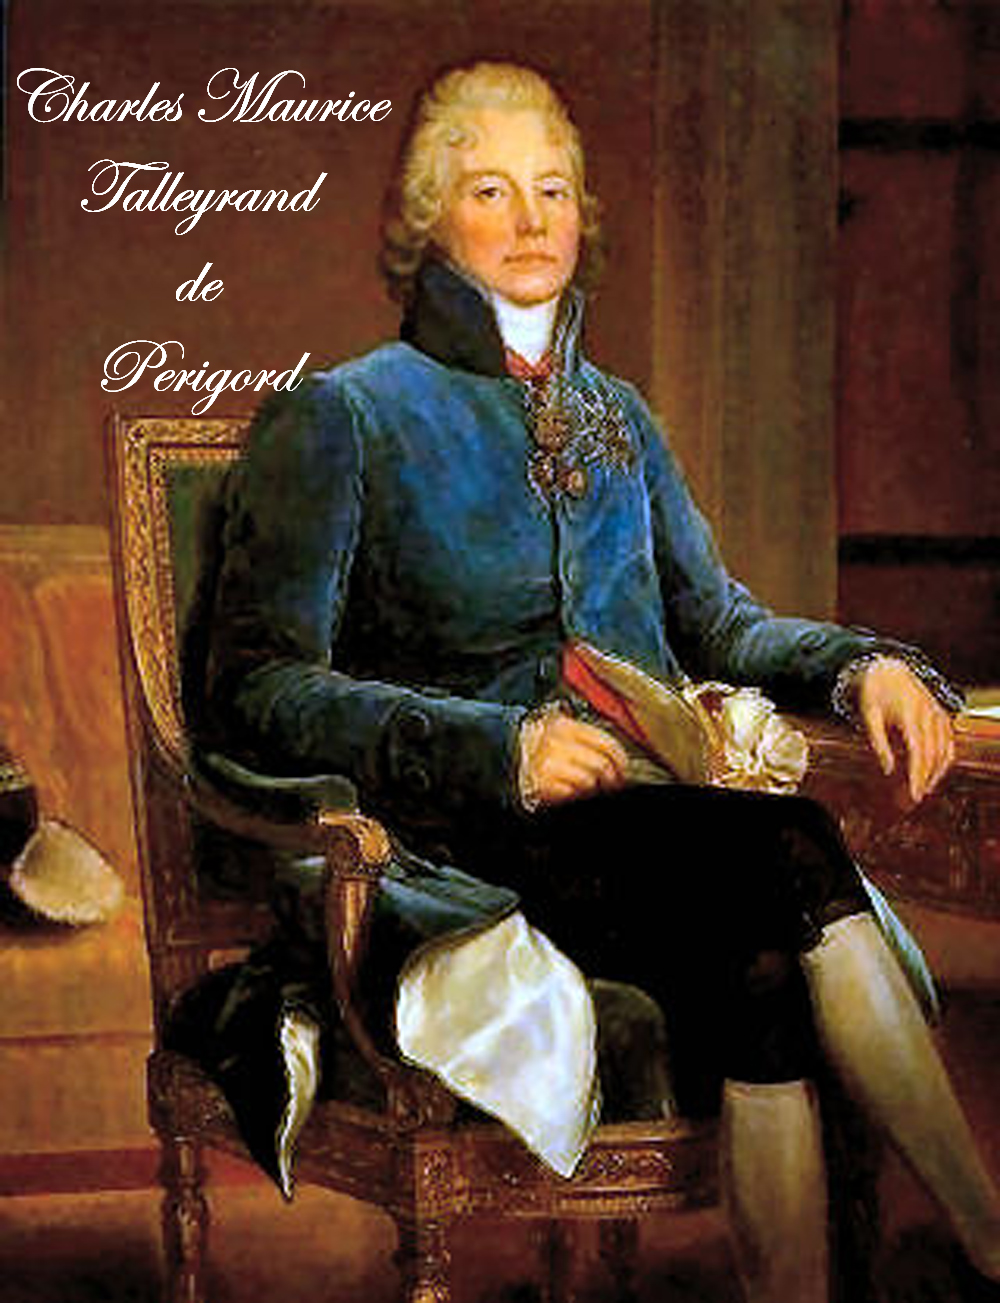 essays on congress of vienna A summary of congress of vienna and the hundred days (1815) in 's napoleonic europe (1799-1815)  (1799-1815) and what it means perfect for acing essays, tests,.